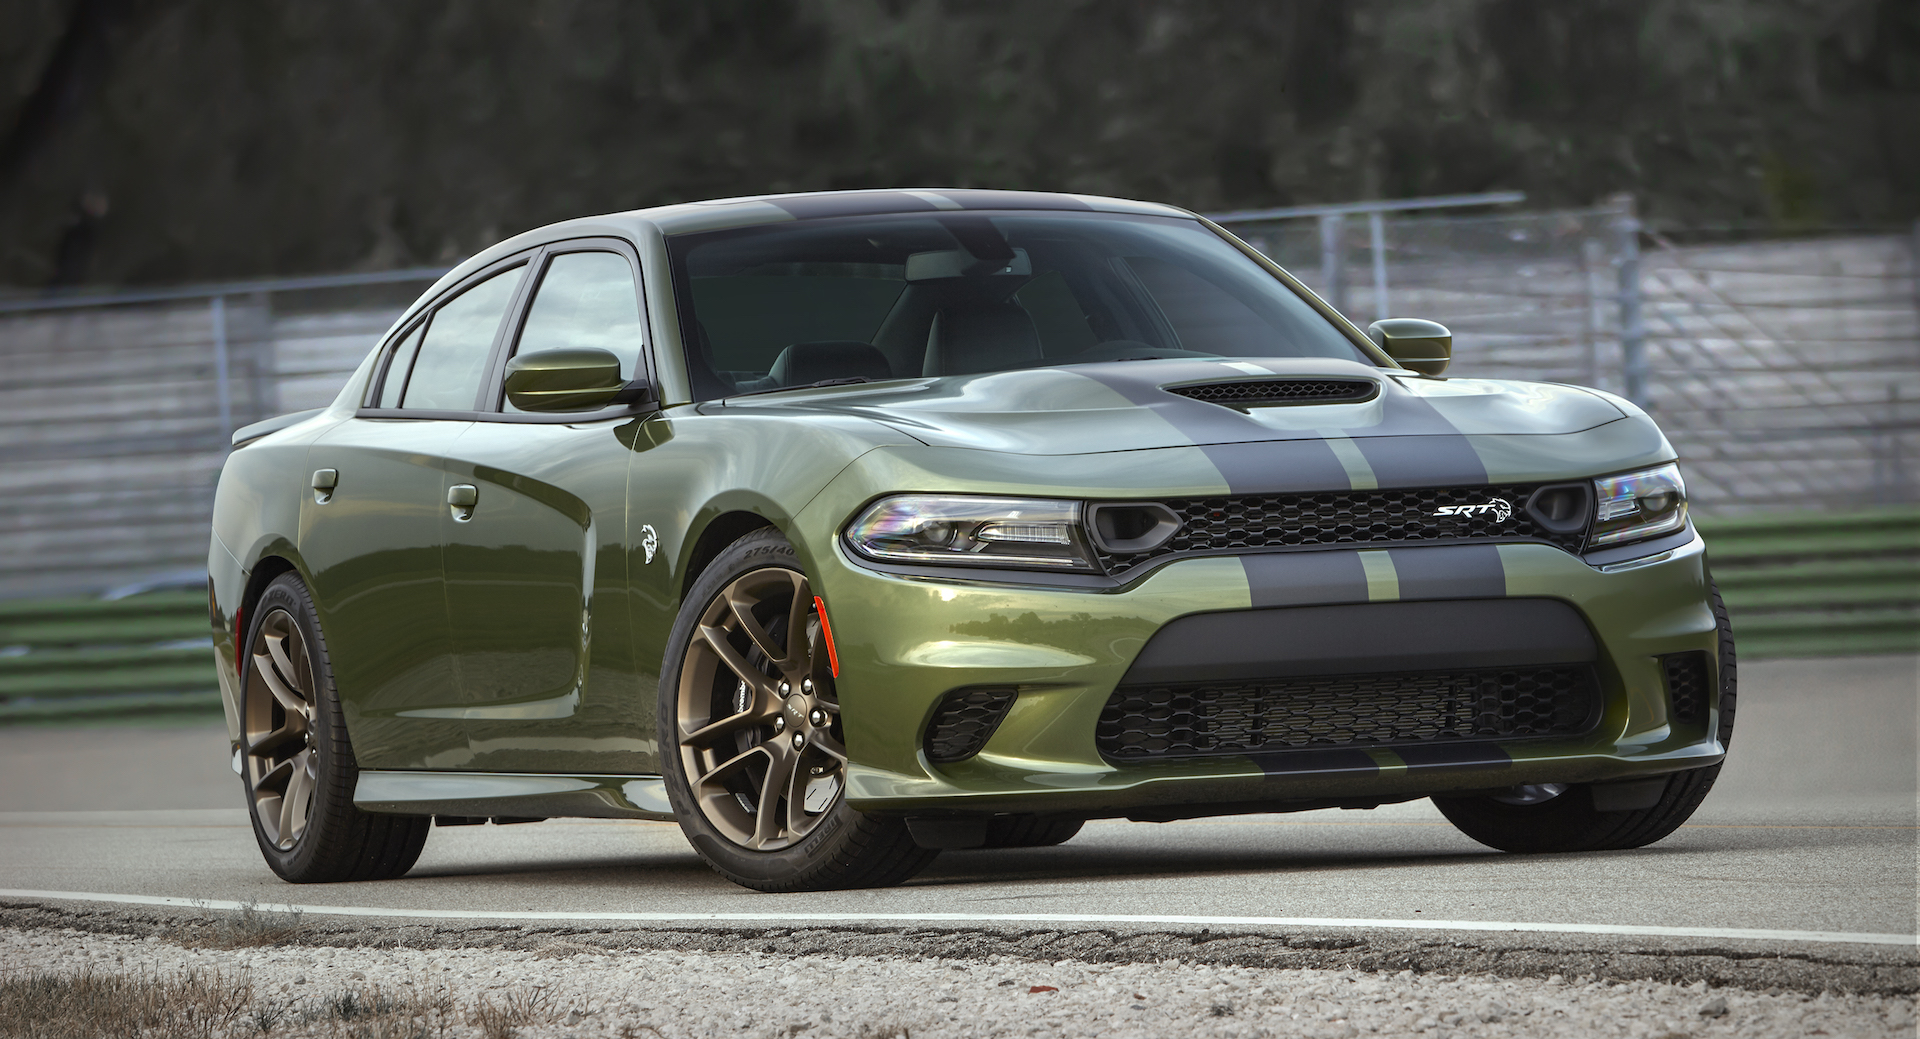 32 New 2019 Dodge Charger Srt8 Hellcat Pricing